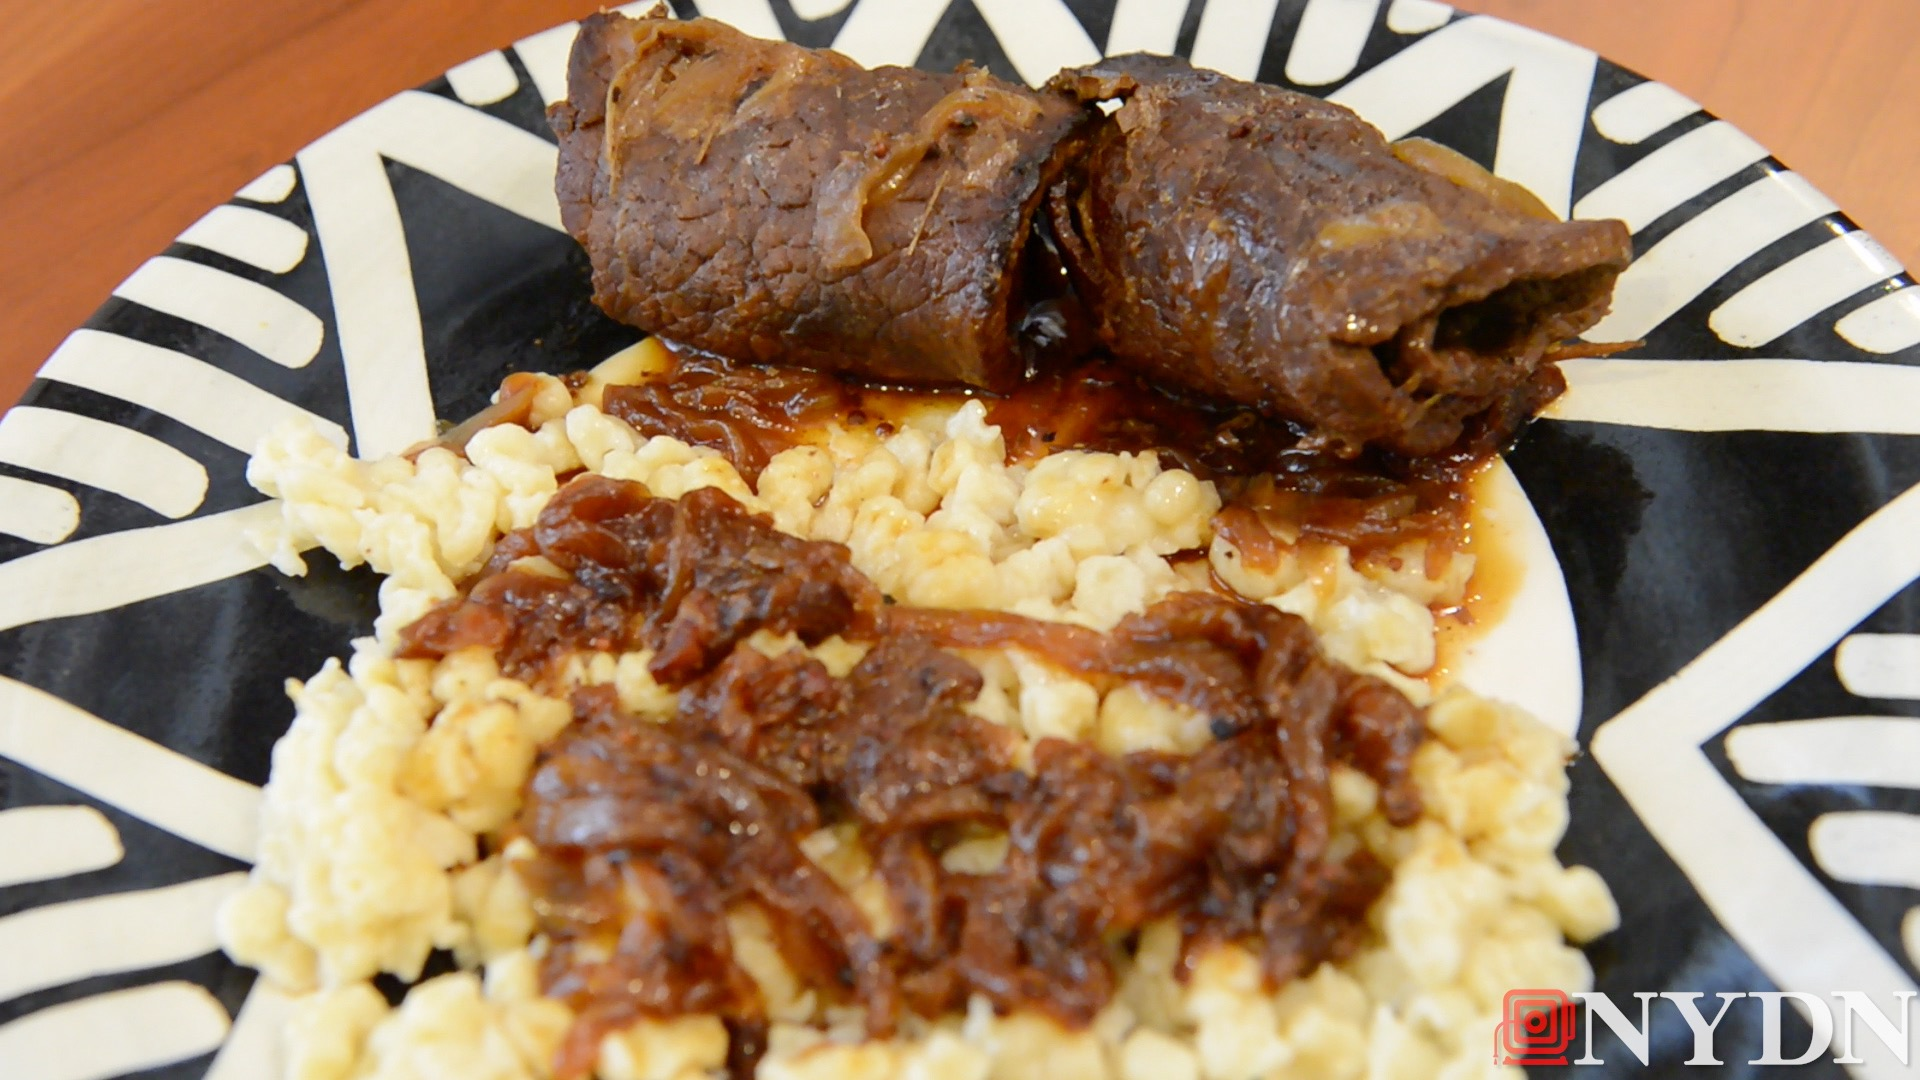 EthNYC Eats: Rouladen and Spaetzle with Grandma